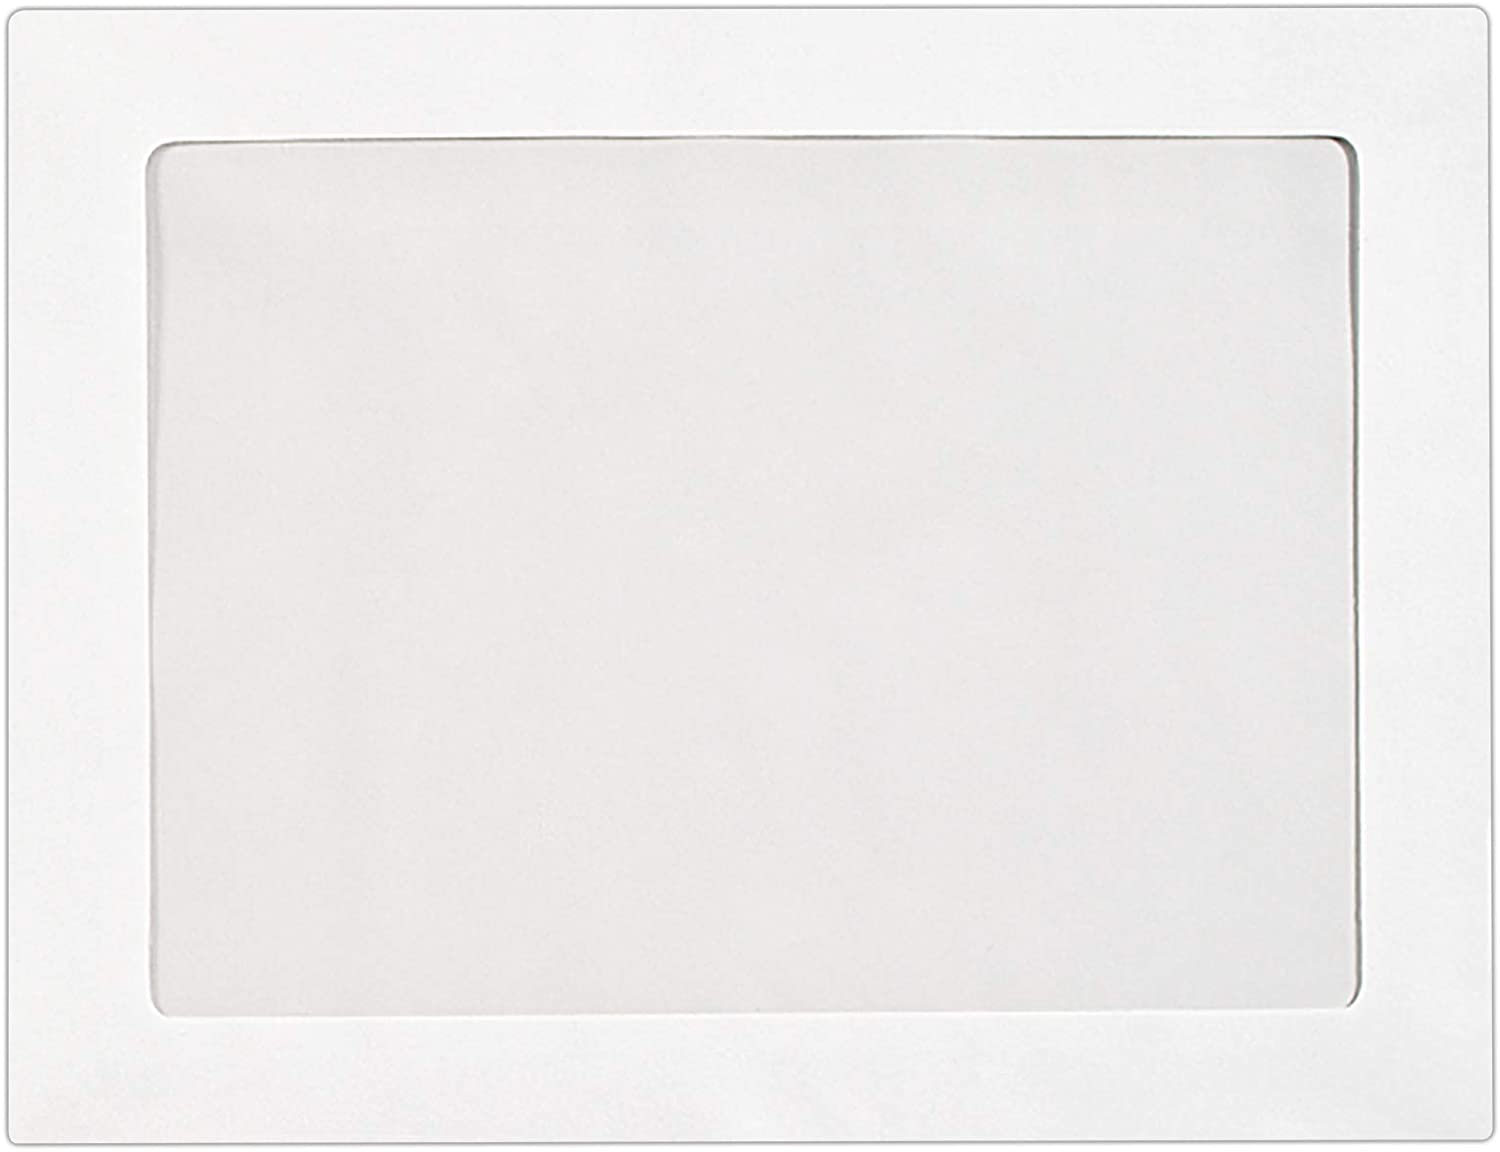 9 x 12 Full-Face Window Envelopes in 28 lb. Bright White for Mailing a Business Letter, Catalog, Financial Document, Magazine, Pamphlet, 50 Pack (White) : Office Products